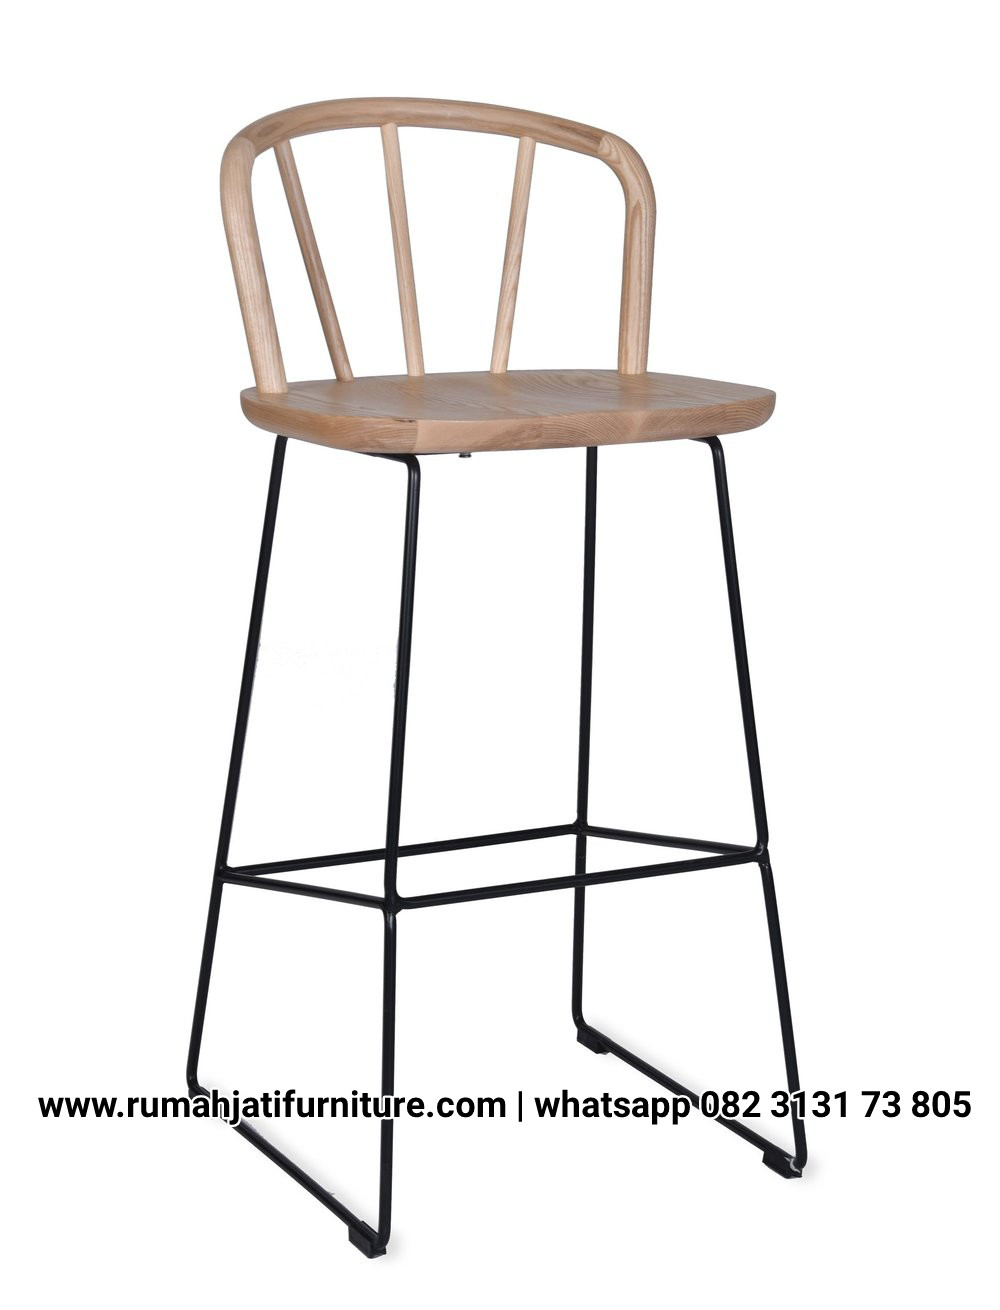 Gambar Bar Stool Industrial Kombinasi Jati | RUMAH JATI FURNITURE